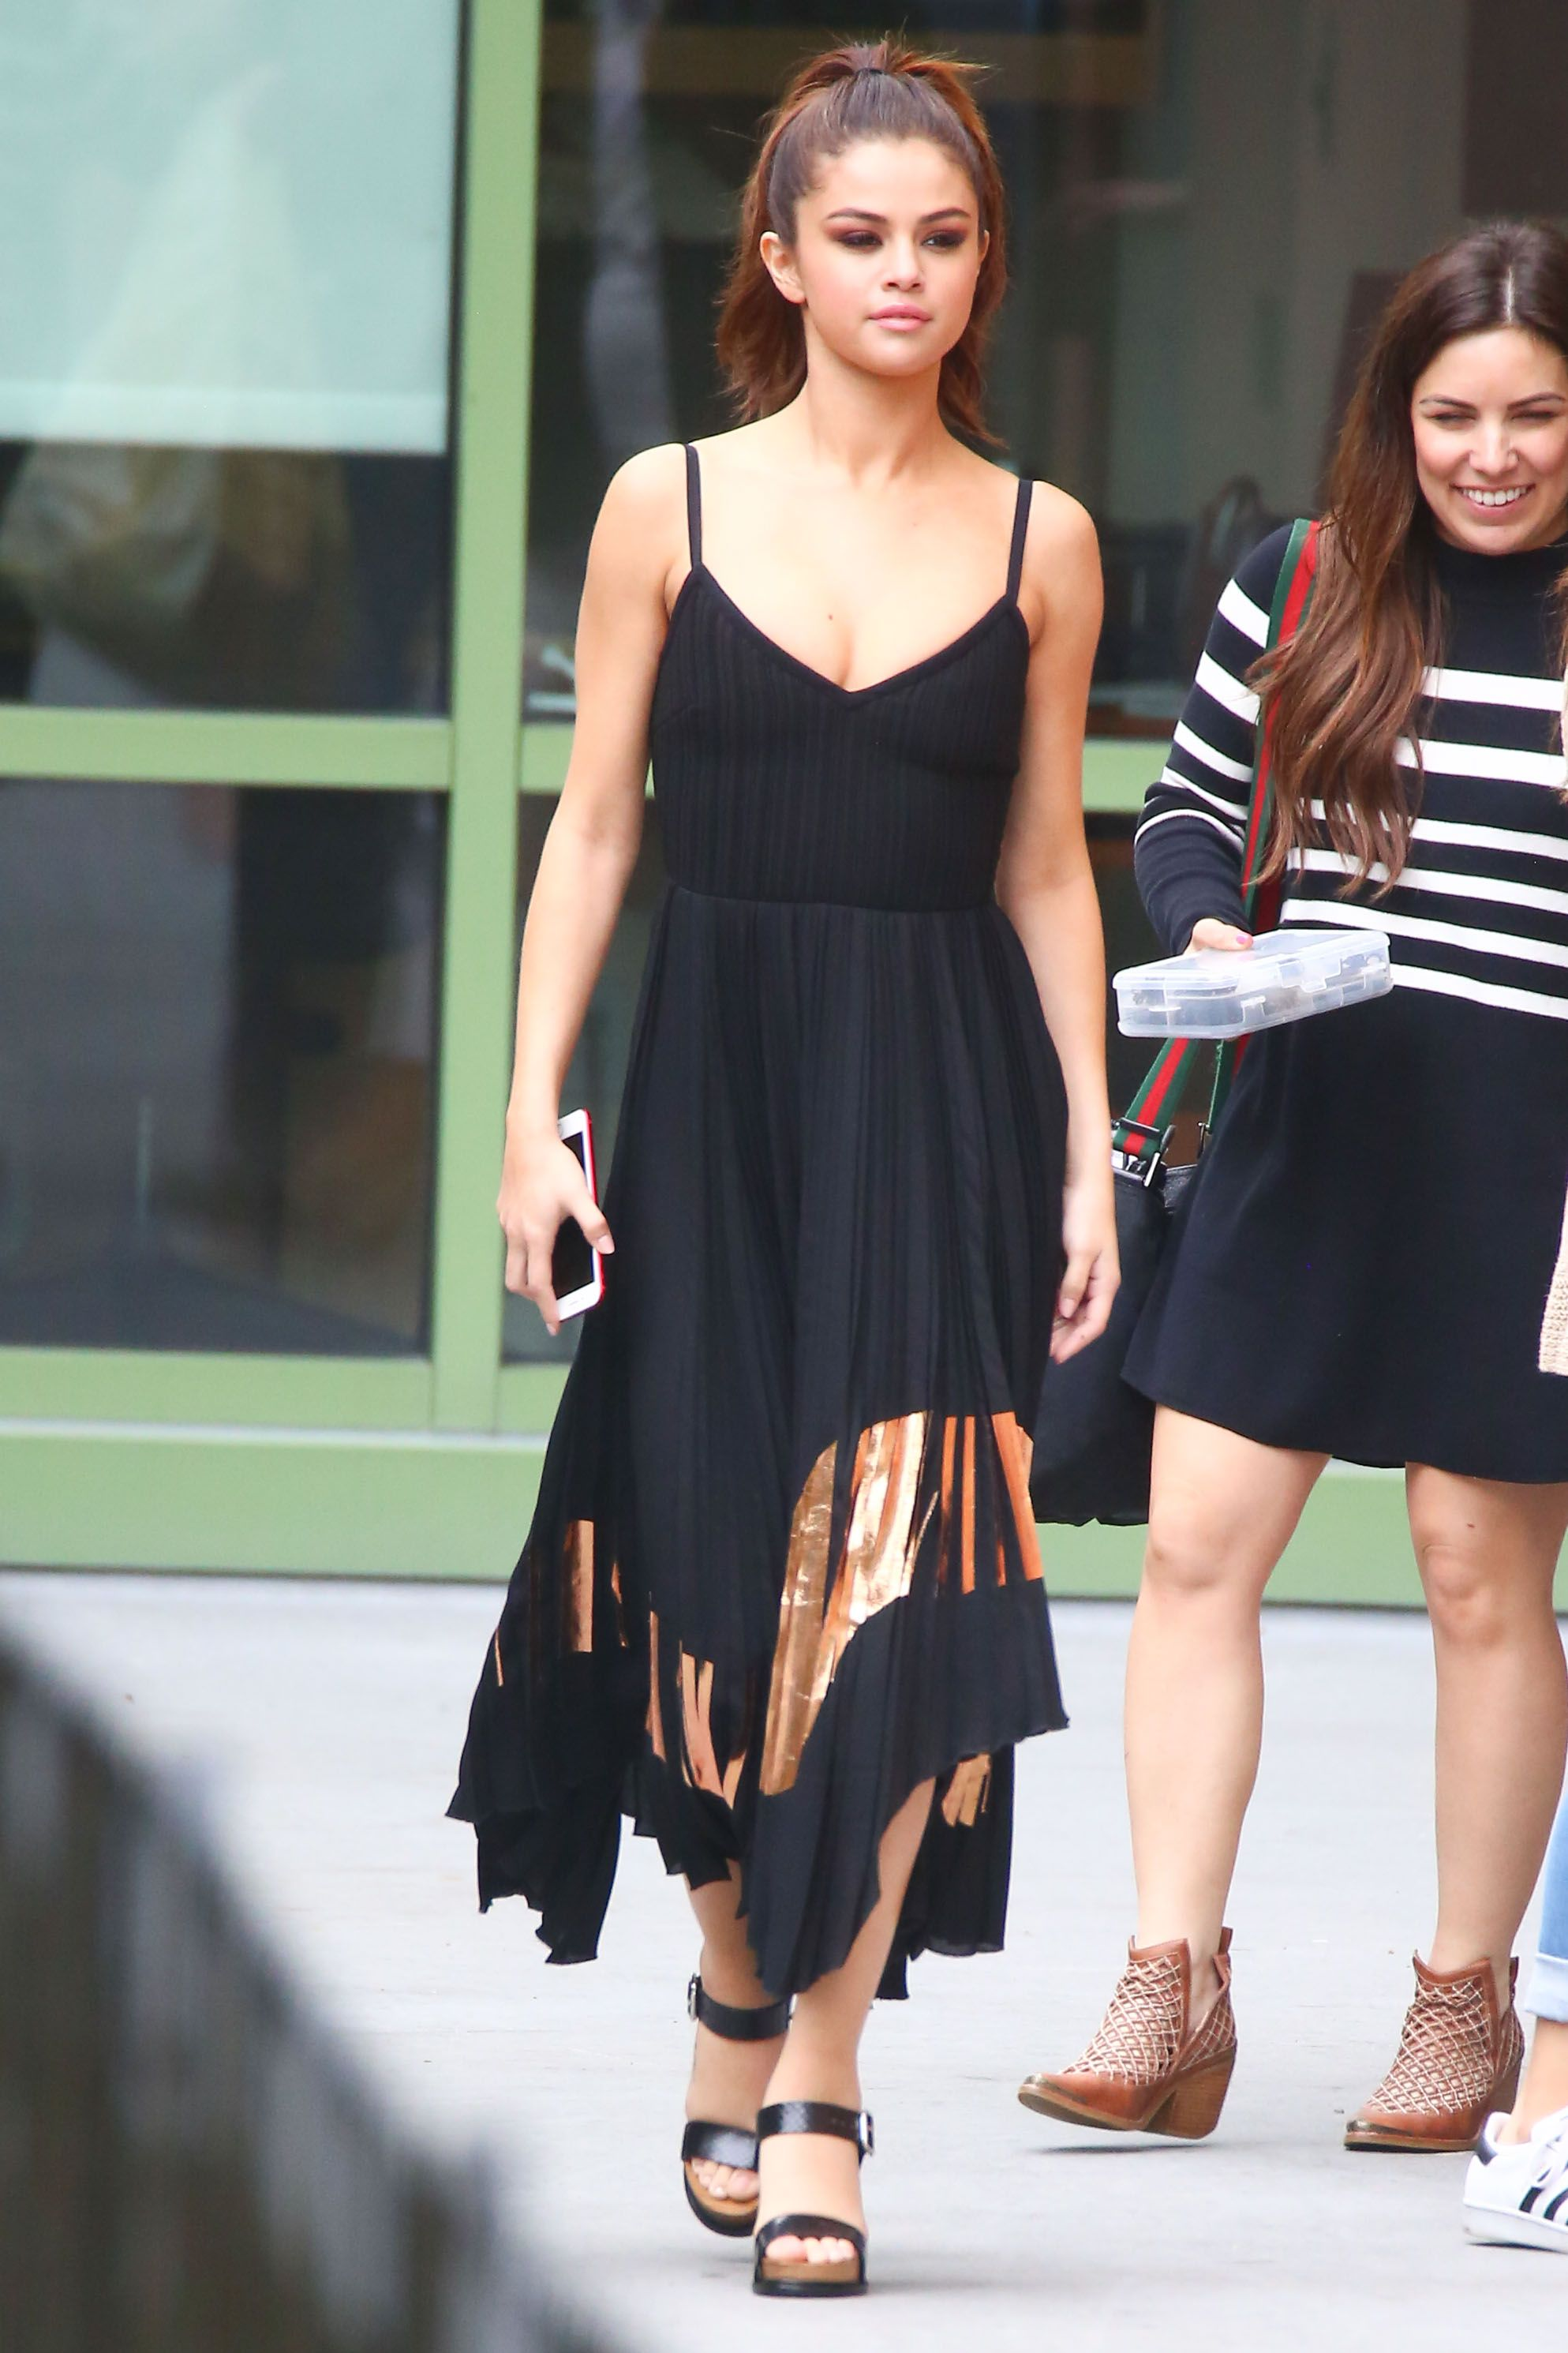 Stunning Selena Gomez out and about with her Tod's sandals.#Tods